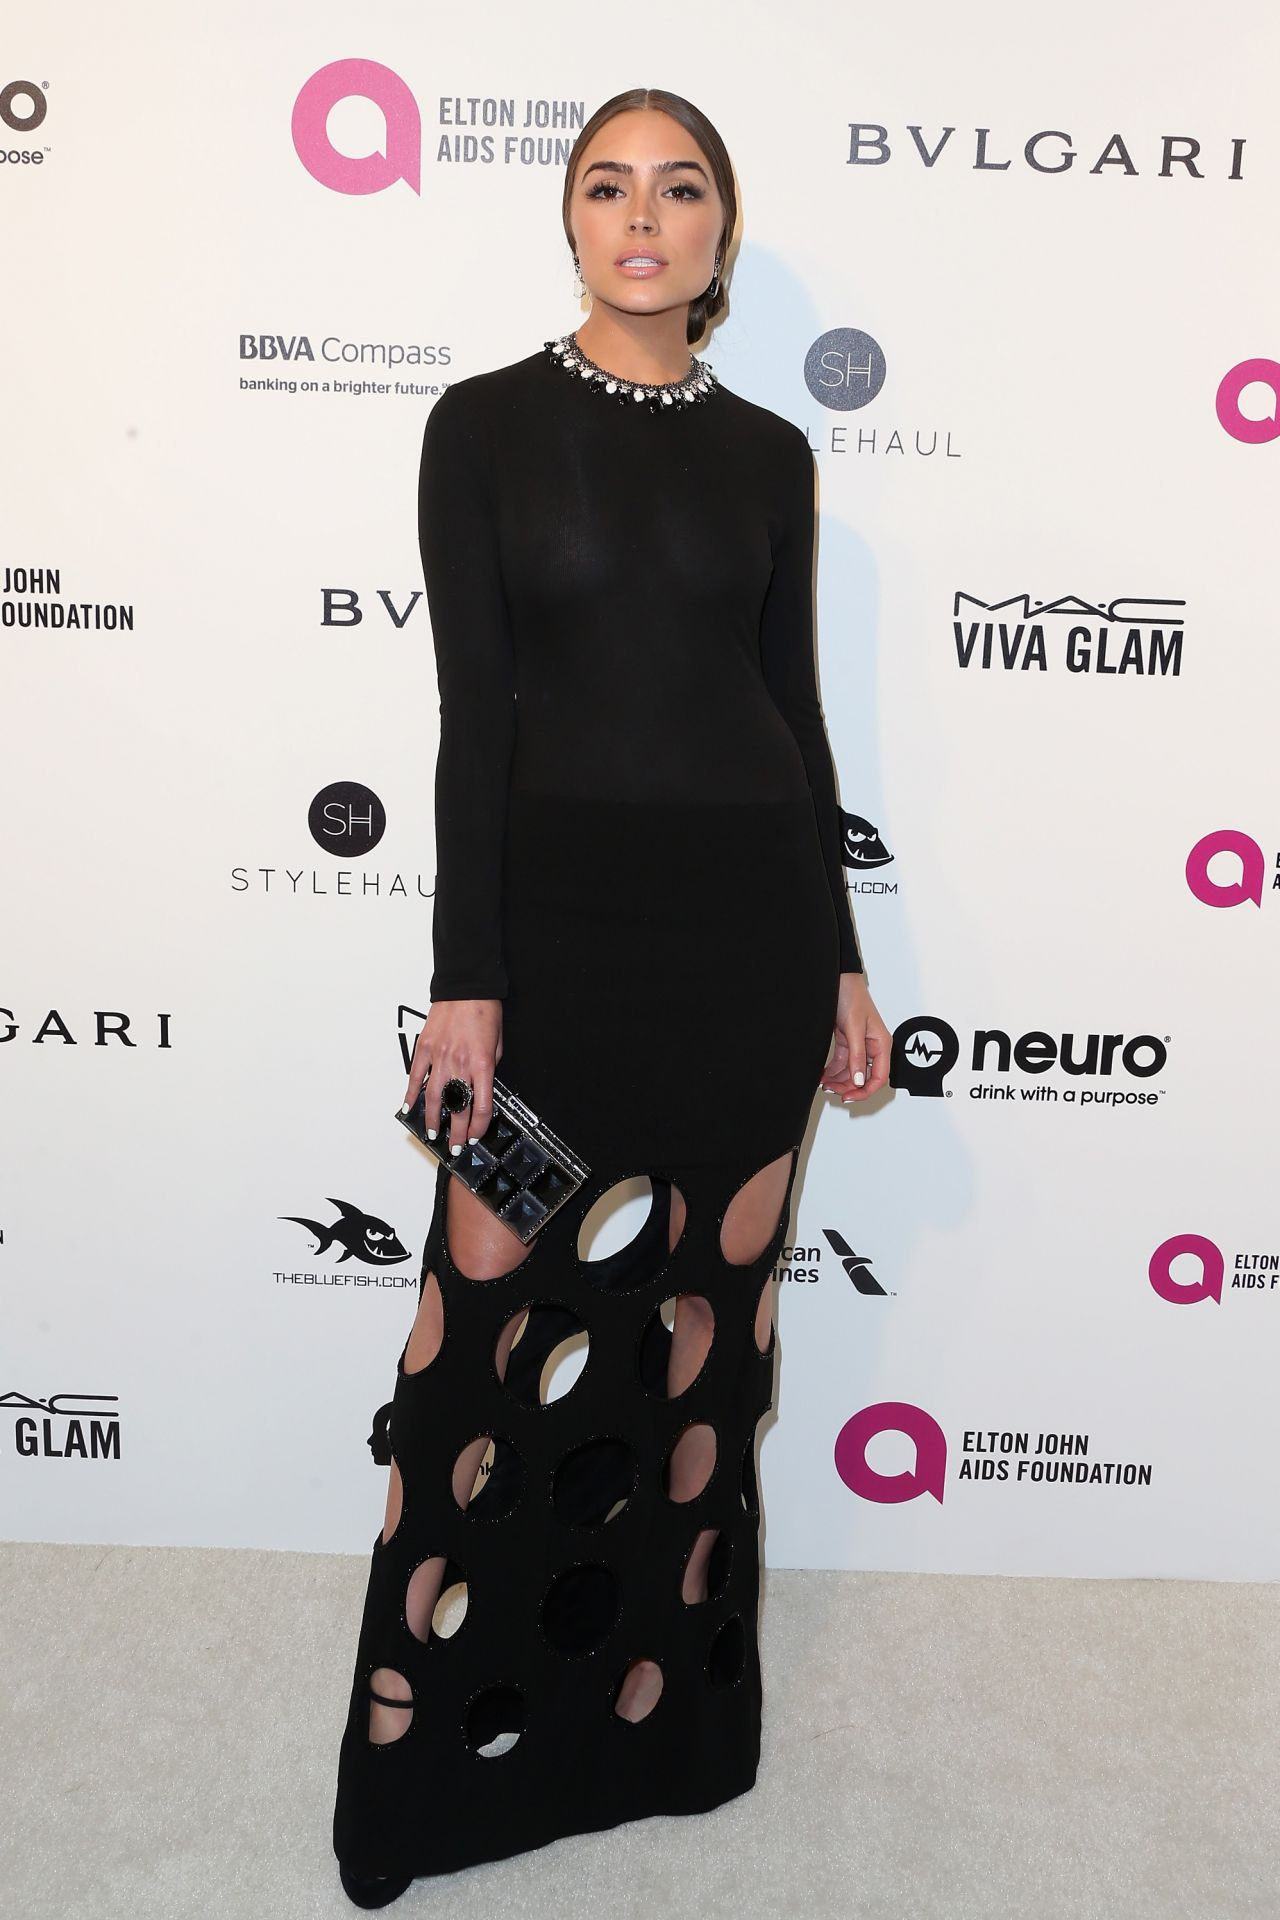 olivia-culpo-elton-john-aids-foundation-academy-awards-2016-viewing-party-in-west-hollywood-ca-1